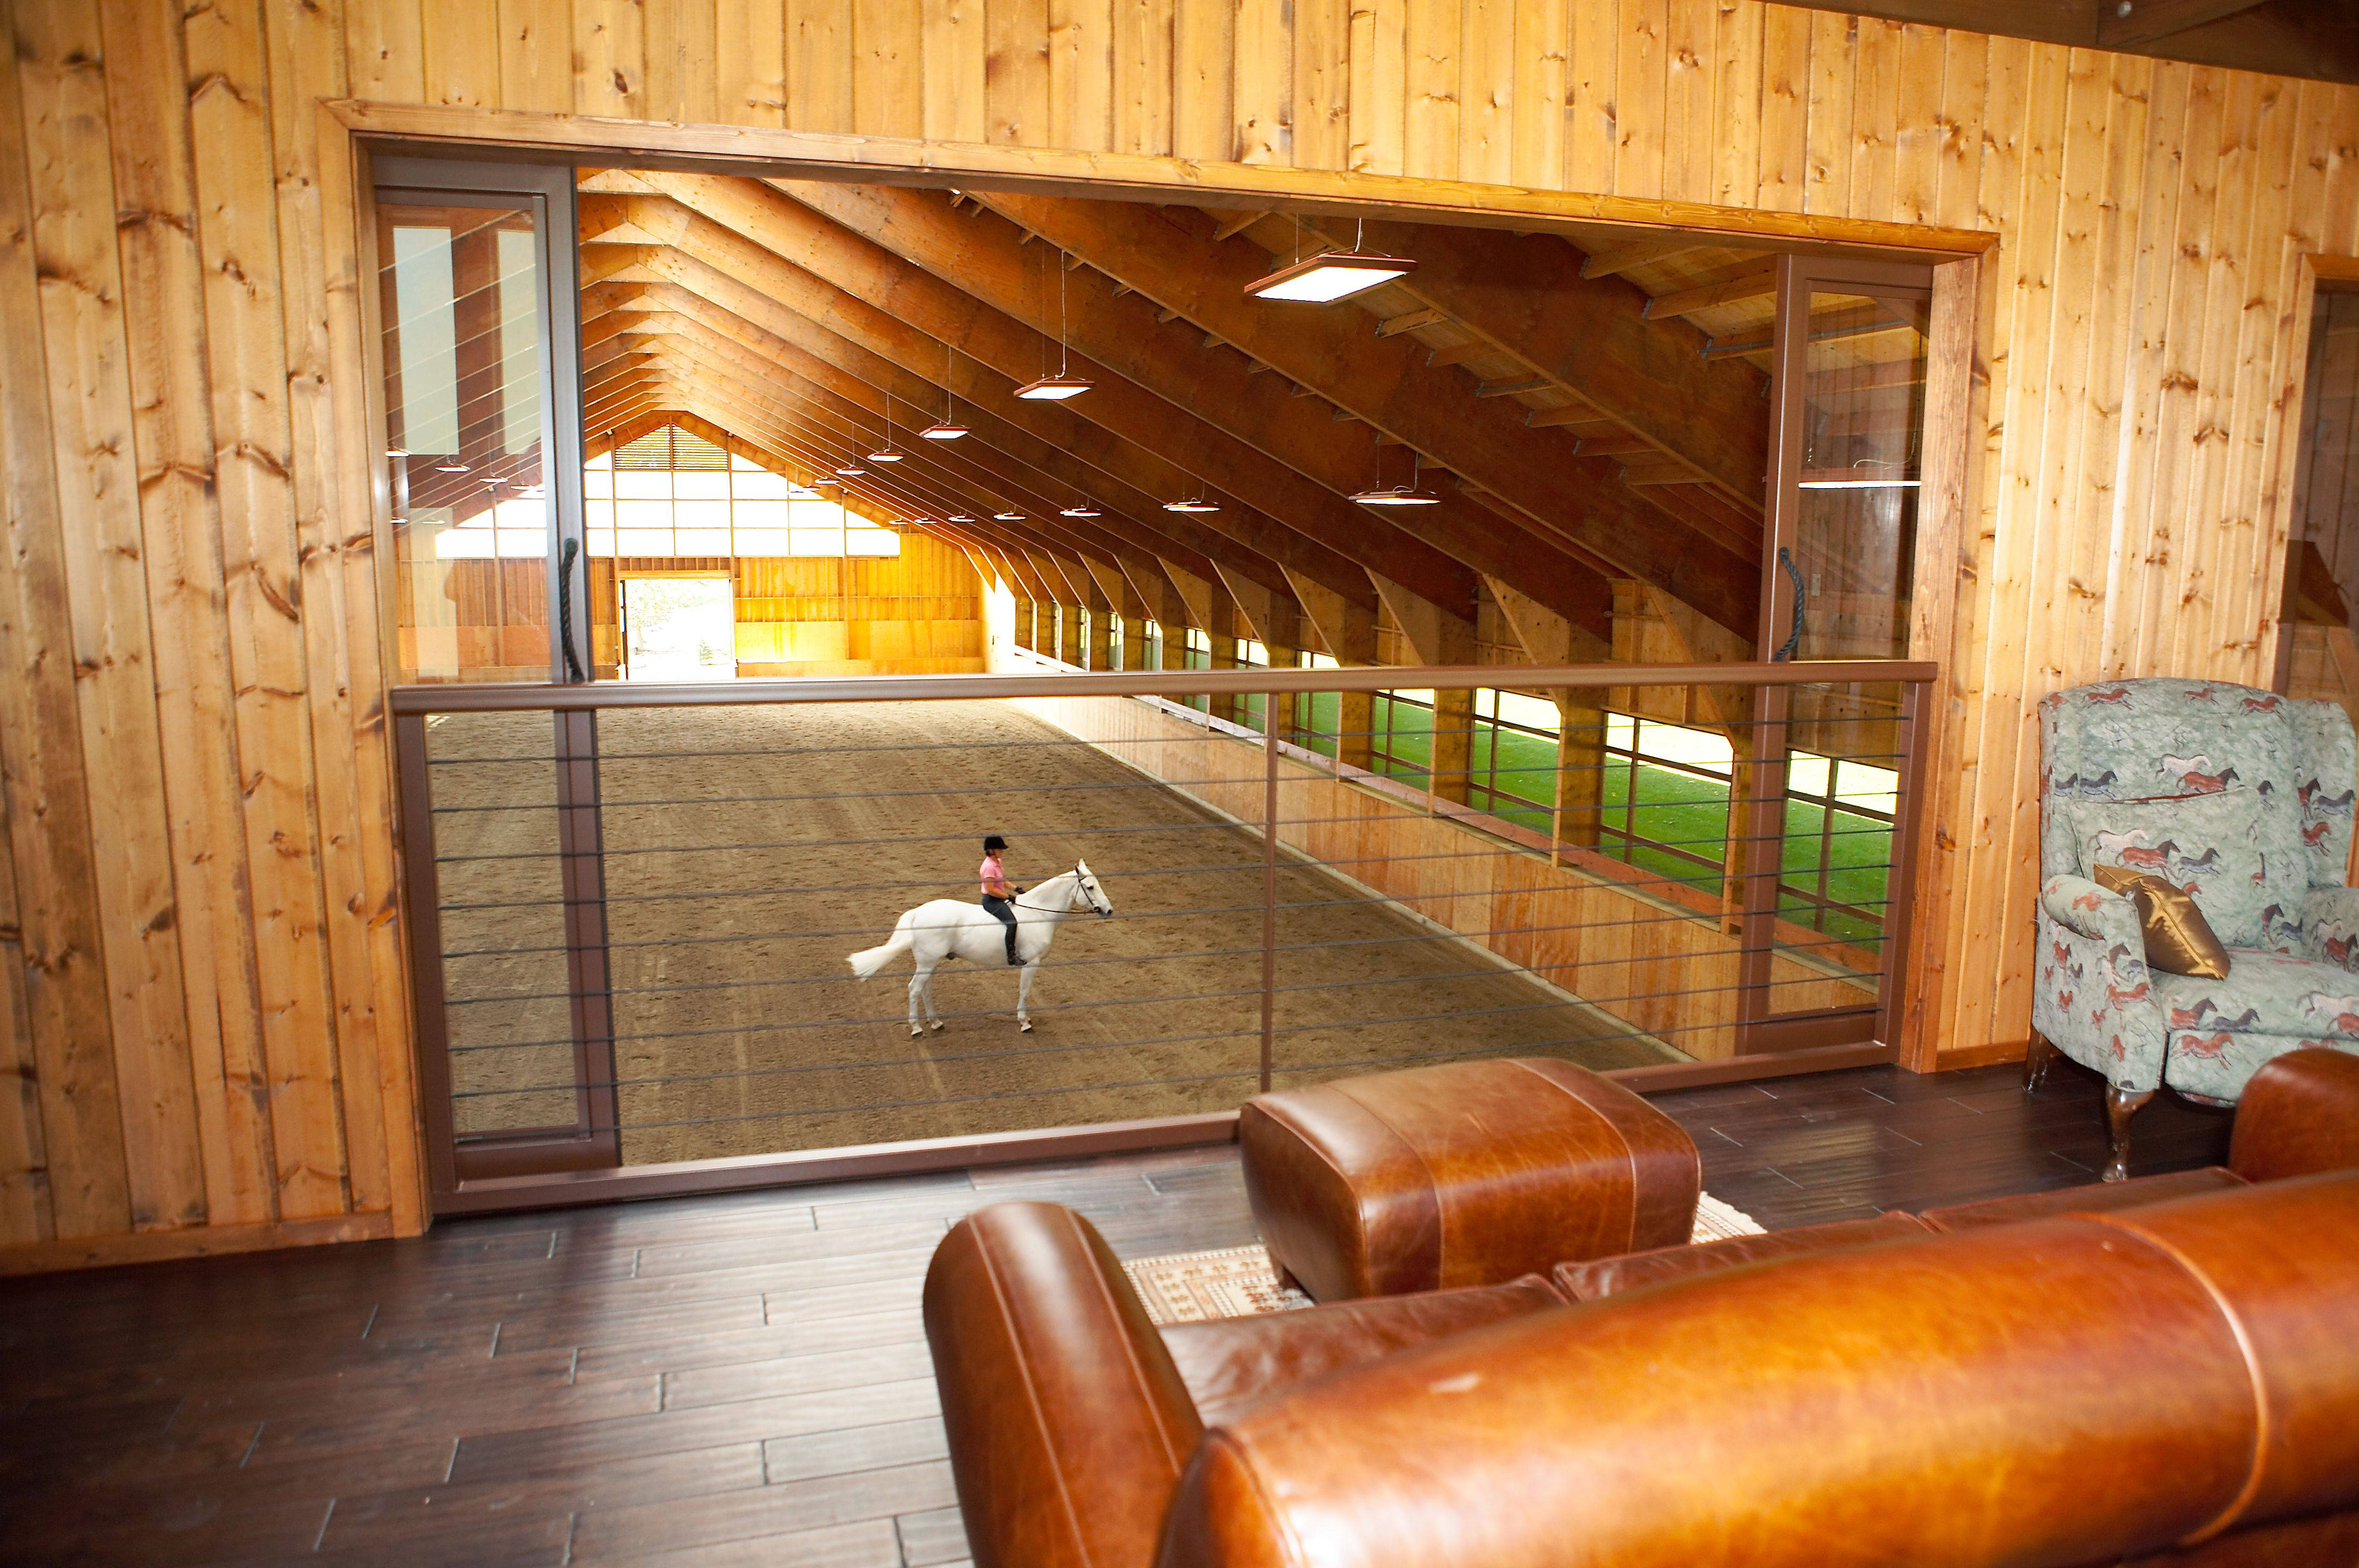 Arena design archives blackburn architects p c for Horse barn design